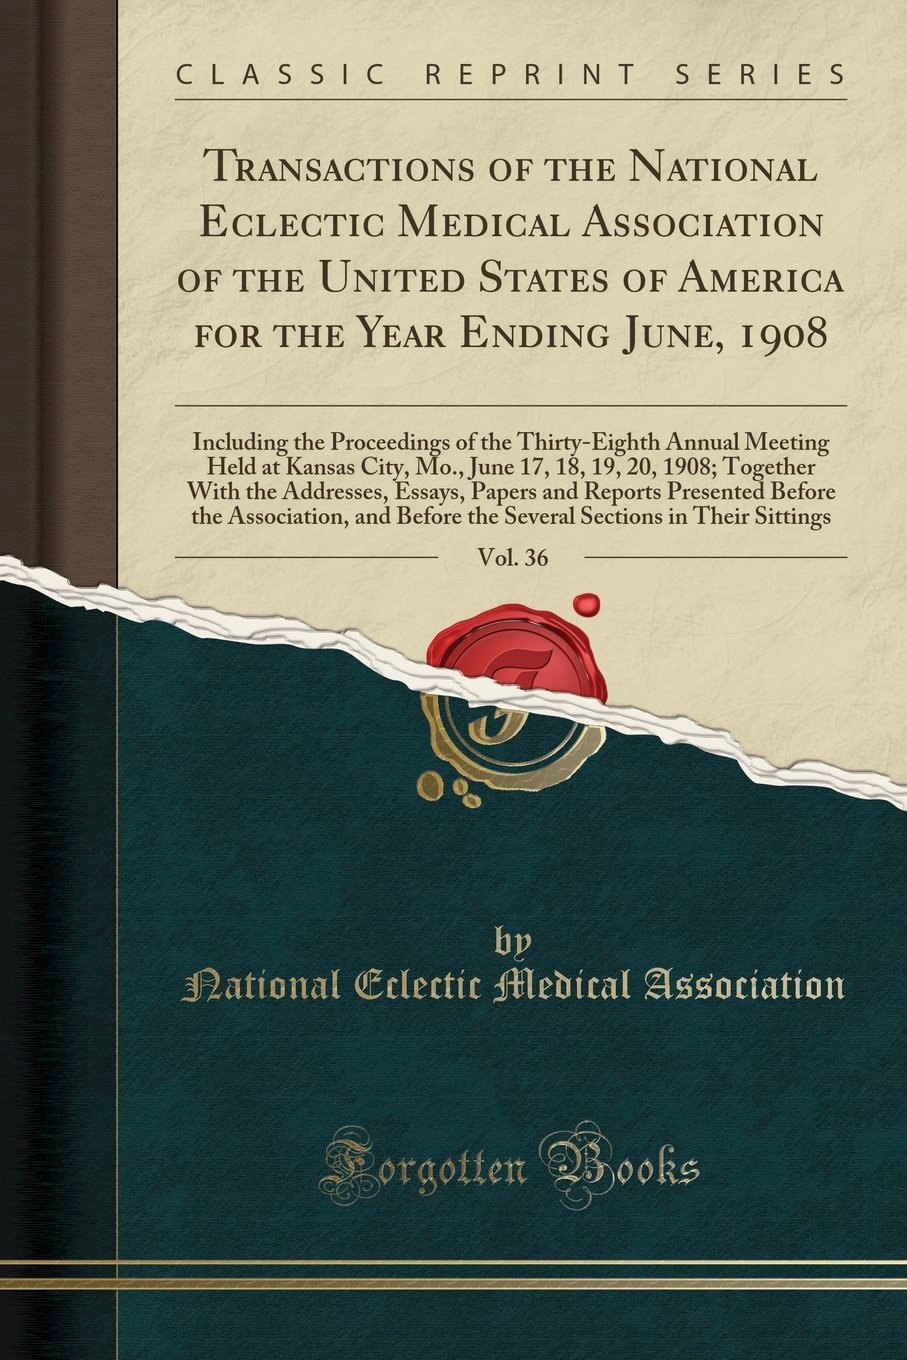 Read Online Transactions of the National Eclectic Medical Association of the United States of America for the Year Ending June, 1908, Vol. 36: Including the ... Mo., June 17, 18, 19, 20, 1908; Together pdf